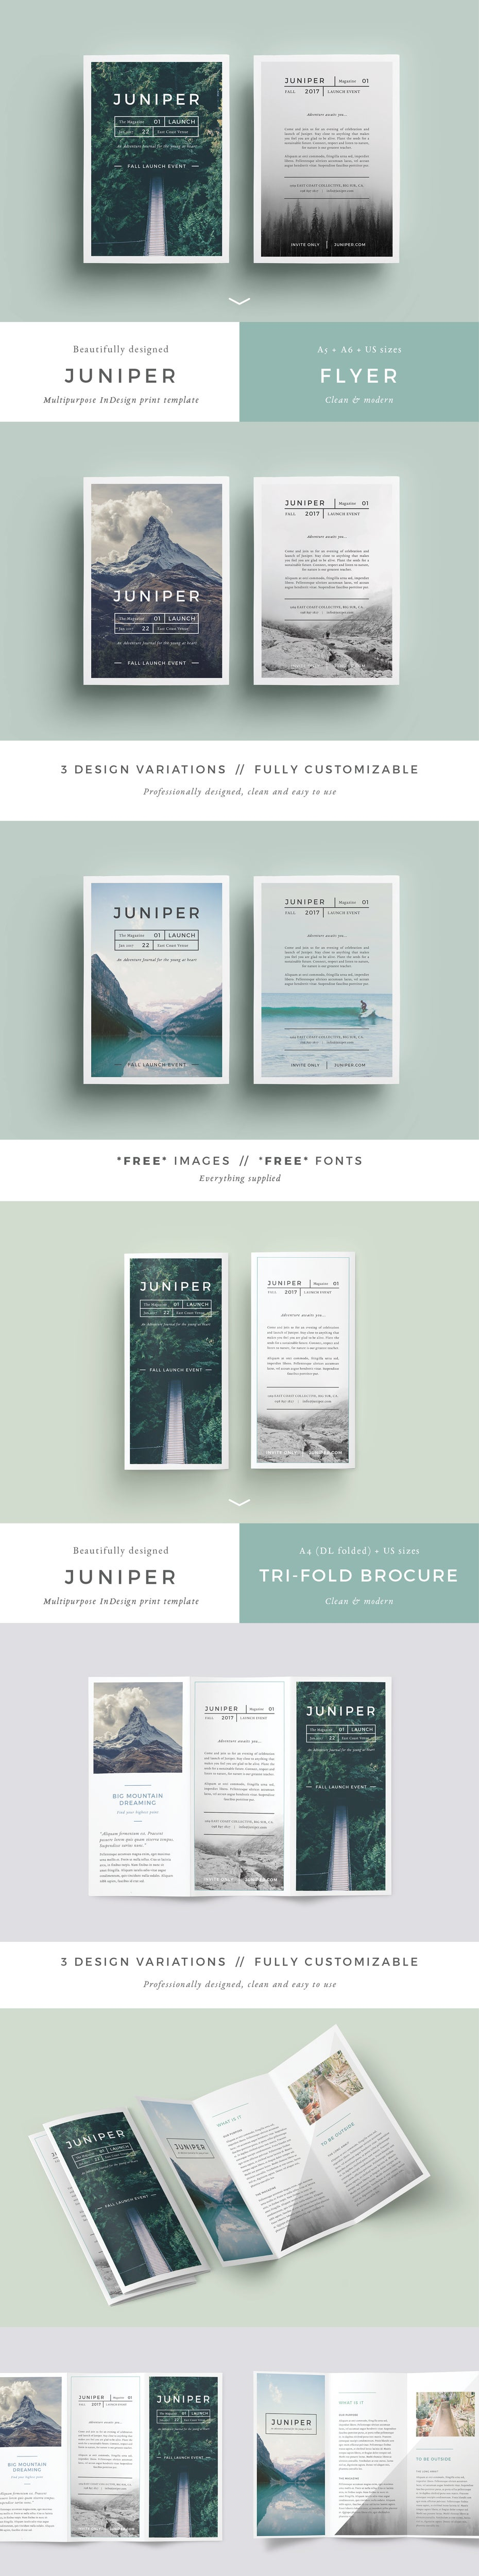 Image of J U N I P E R Branding Bundle